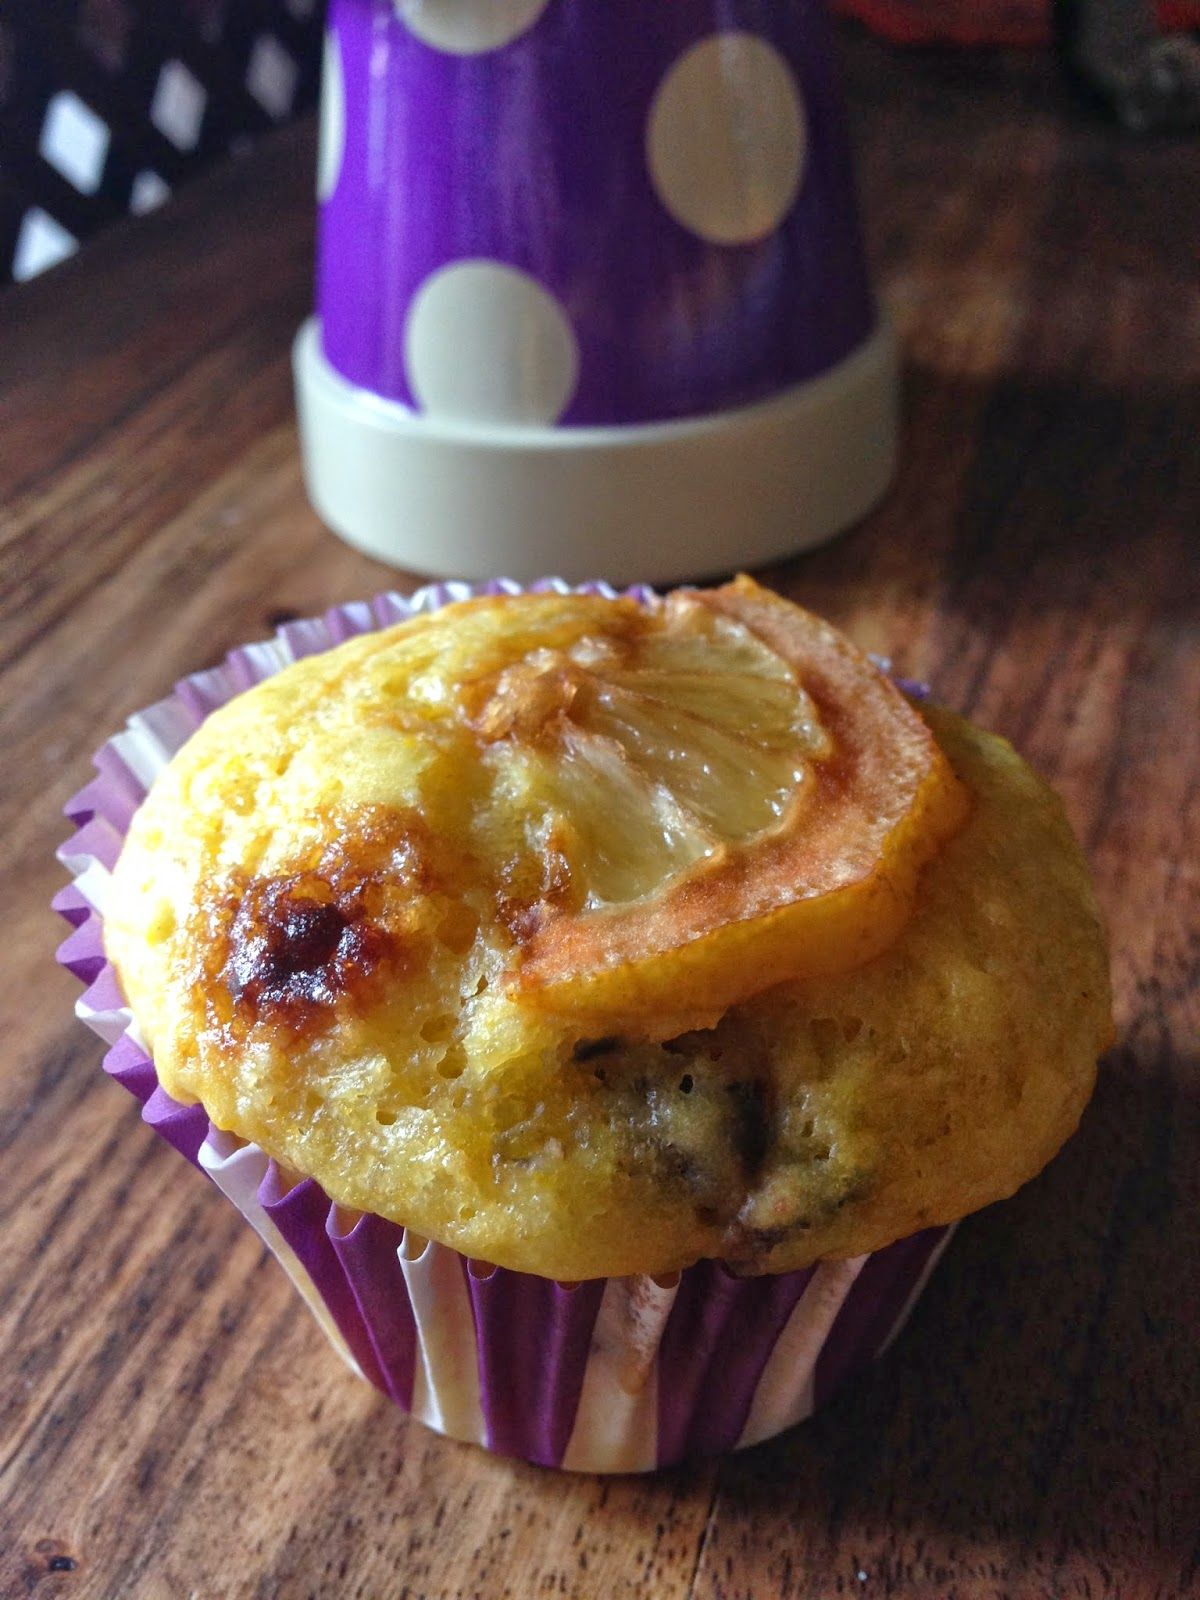 Caramelized Lemon and Blueberries Muffin